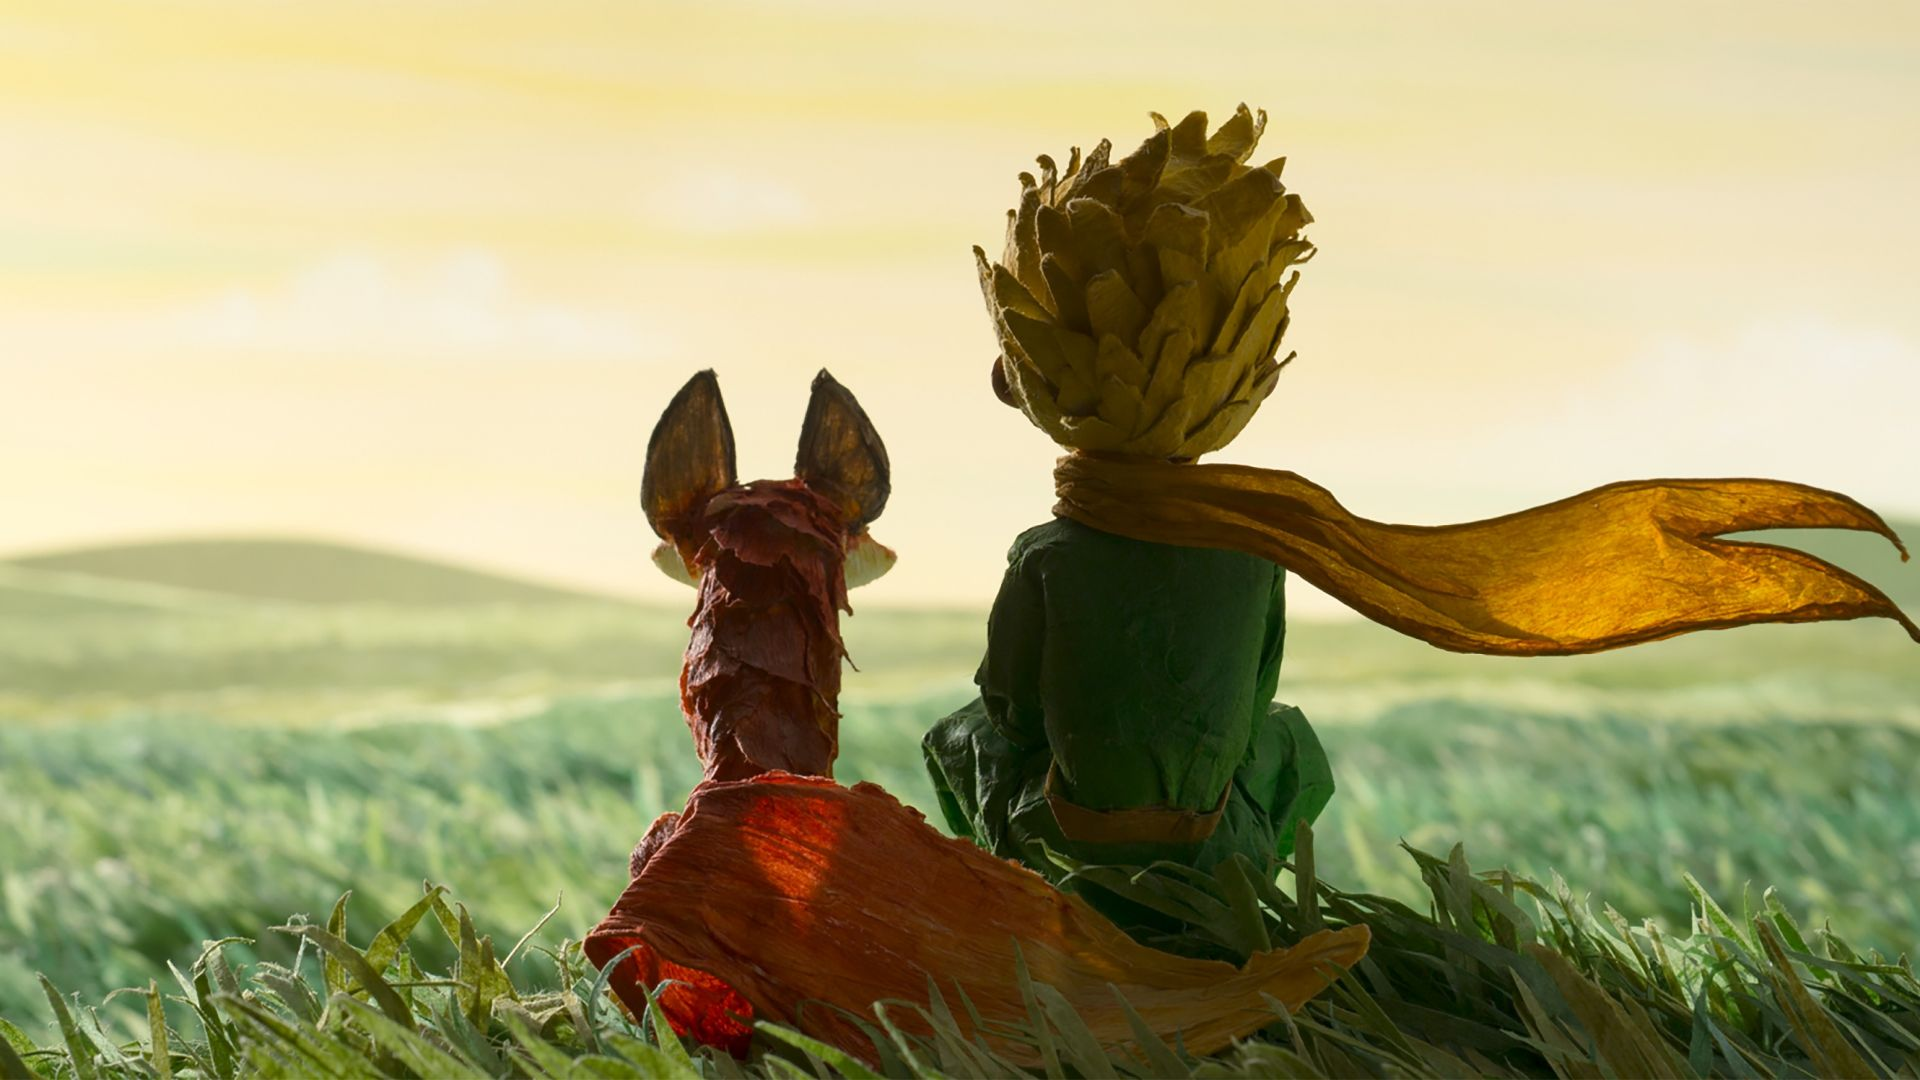 The Little Prince, The Fox (horizontal)